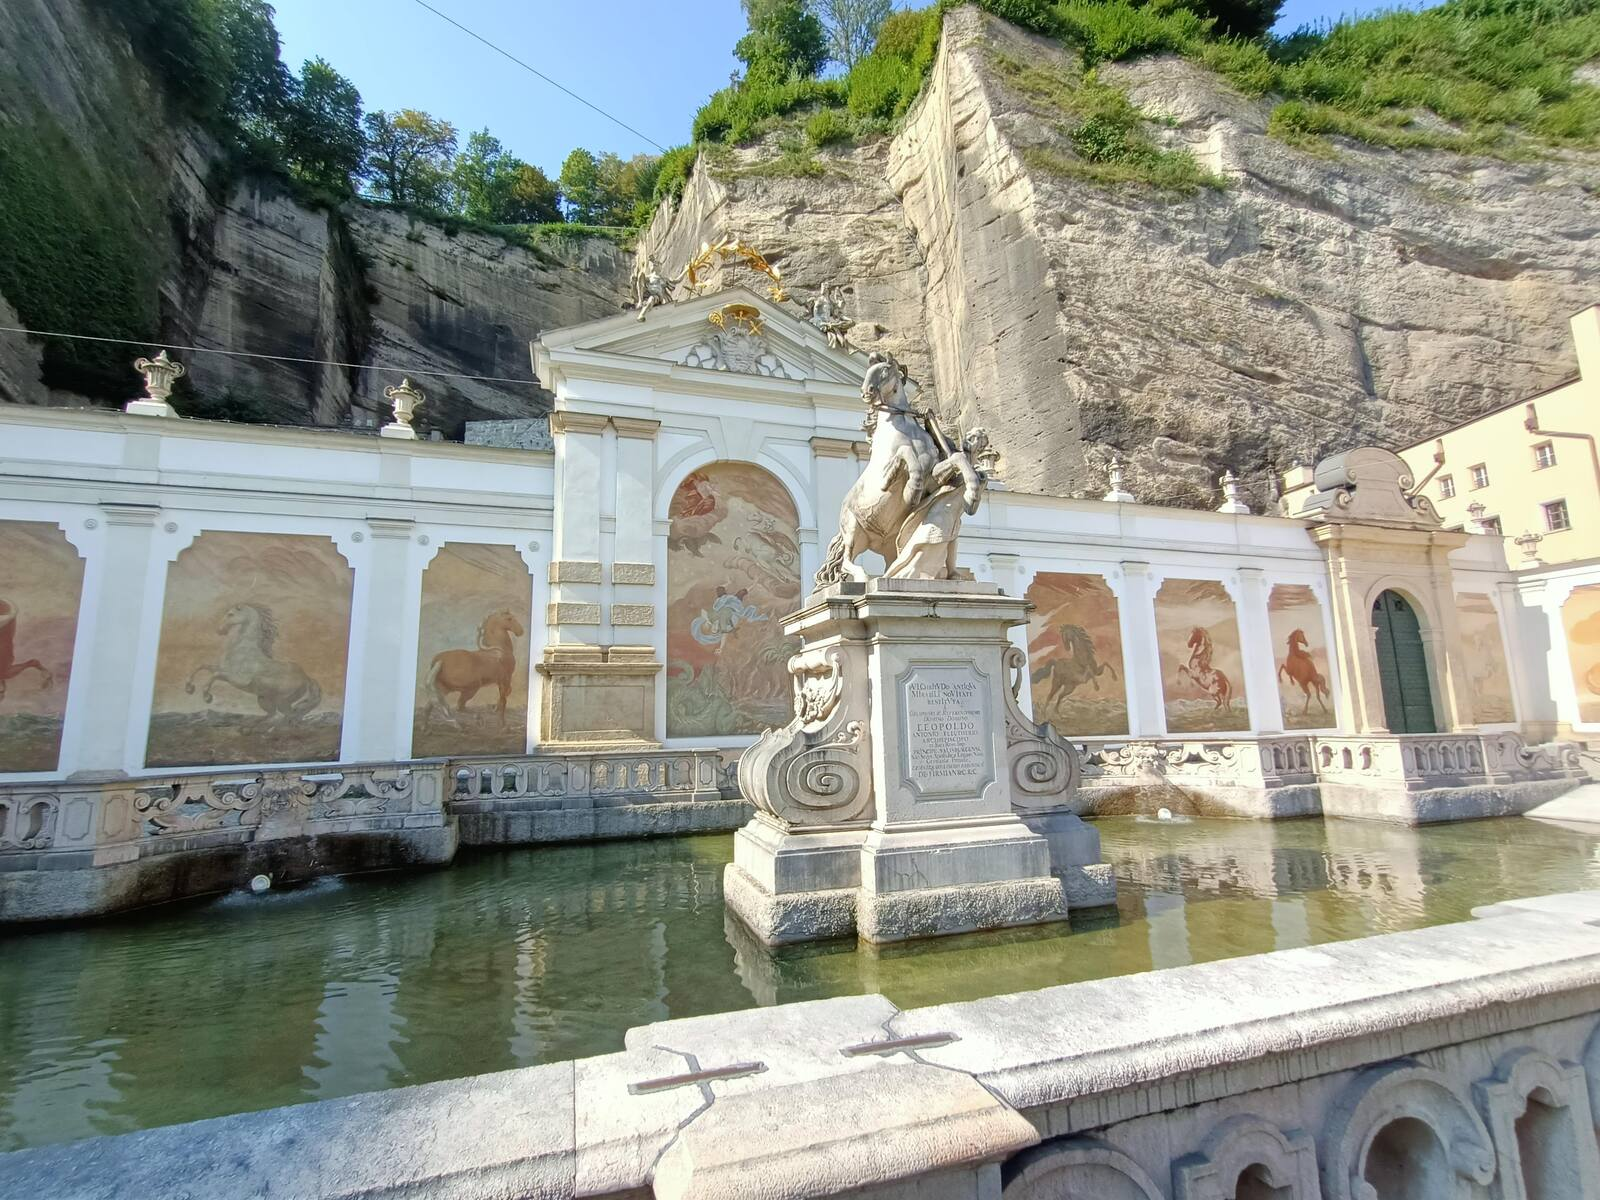 This is the Marstallschwemme, one of two Fountains from the 16th Century that are under Monument protection in Salzburg